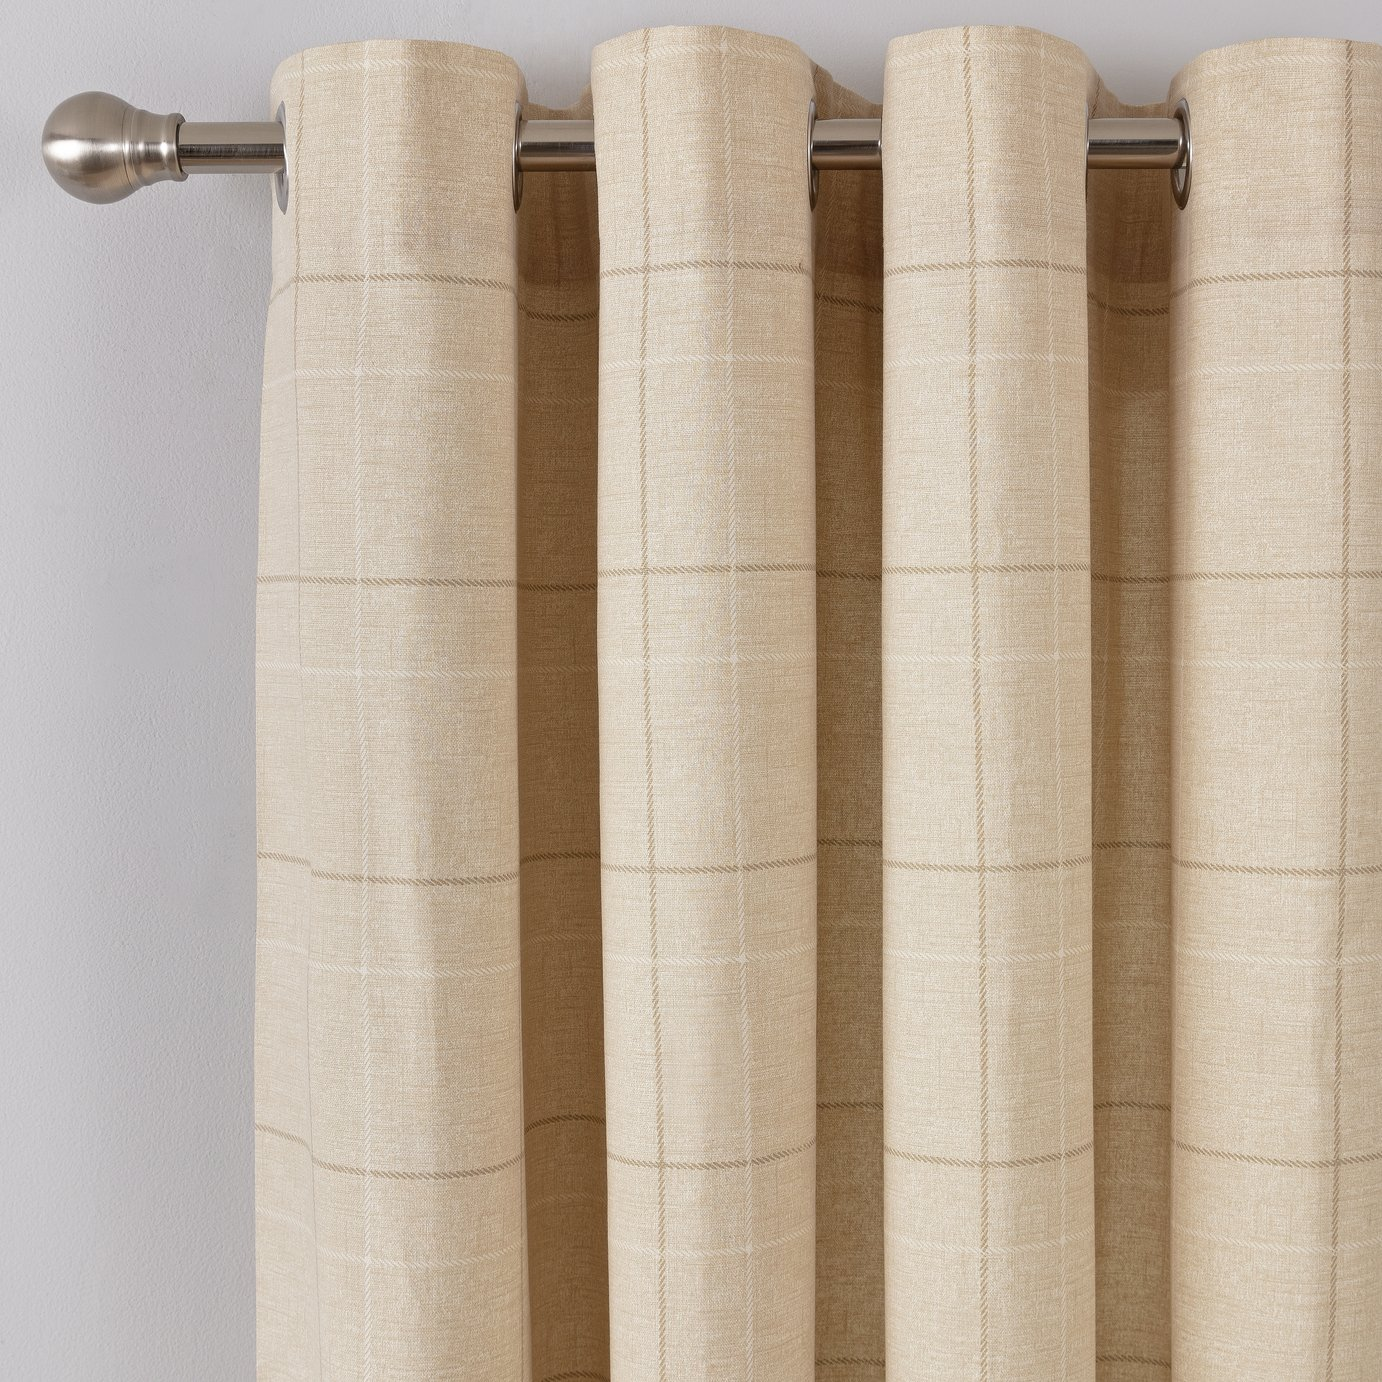 Argos Home Brancaster Check Lined Eyelet Curtains - Natural